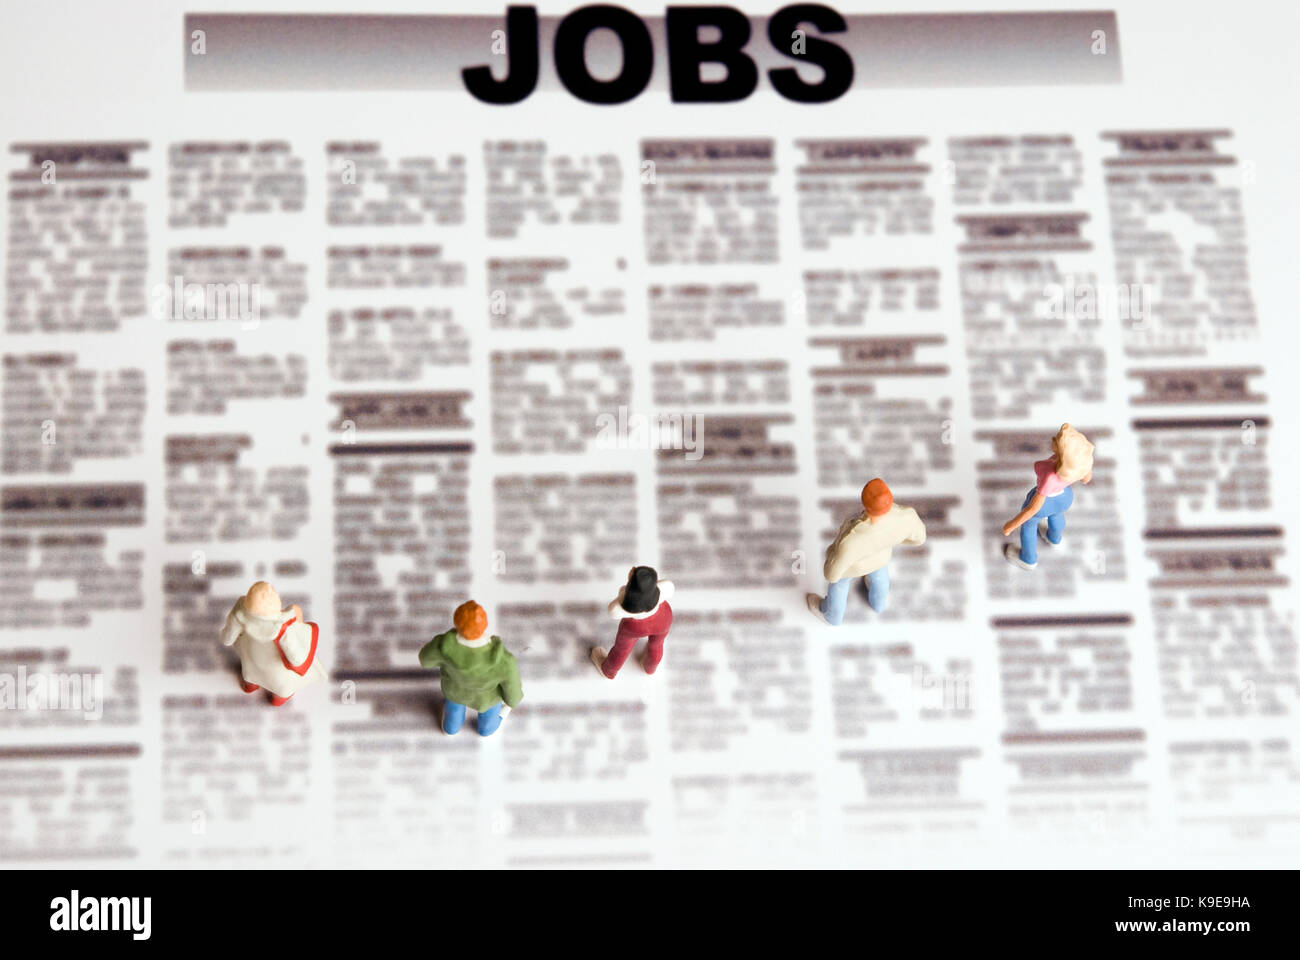 job searching and unemployment concept - Stock Image